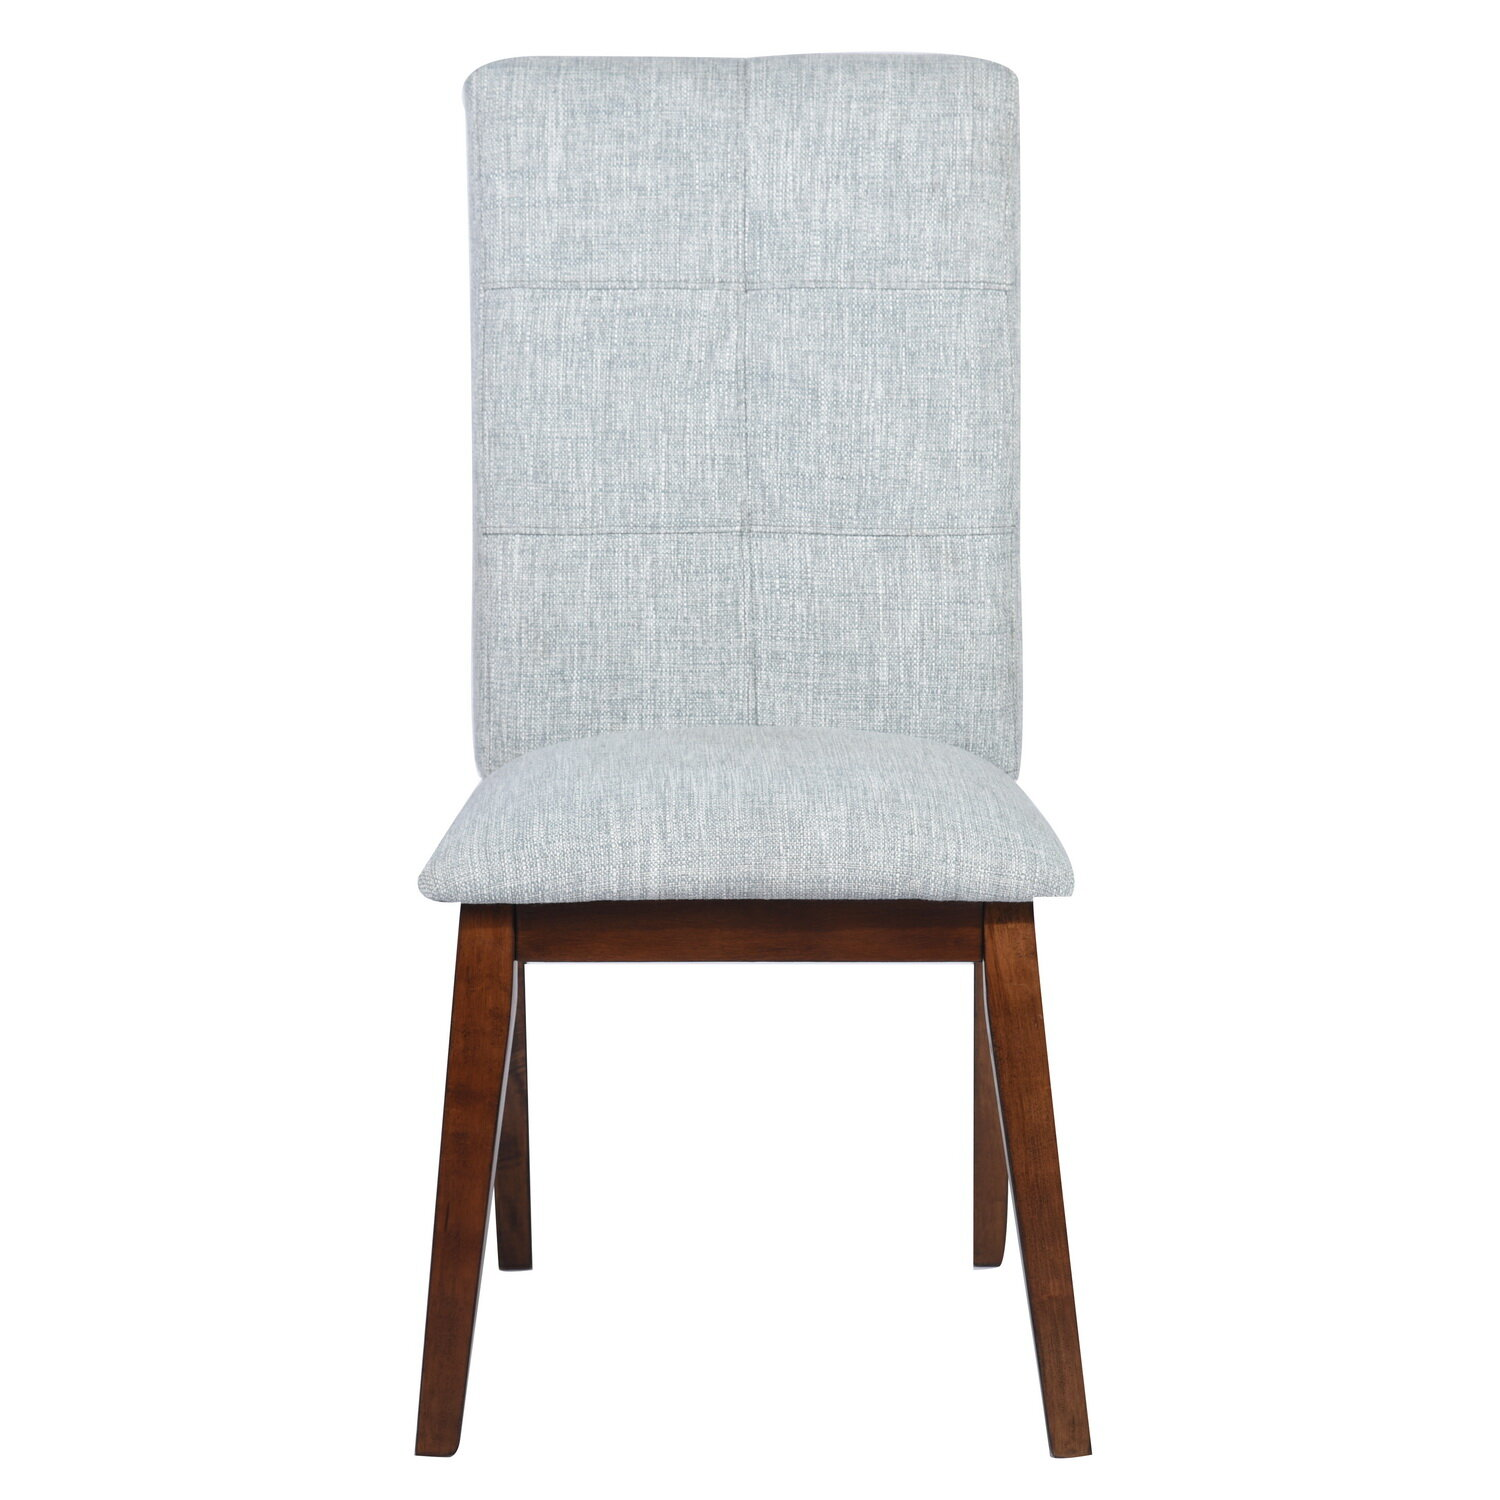 Upholstered Walnut Kitchen Dining Chairs You Ll Love In 2021 Wayfair